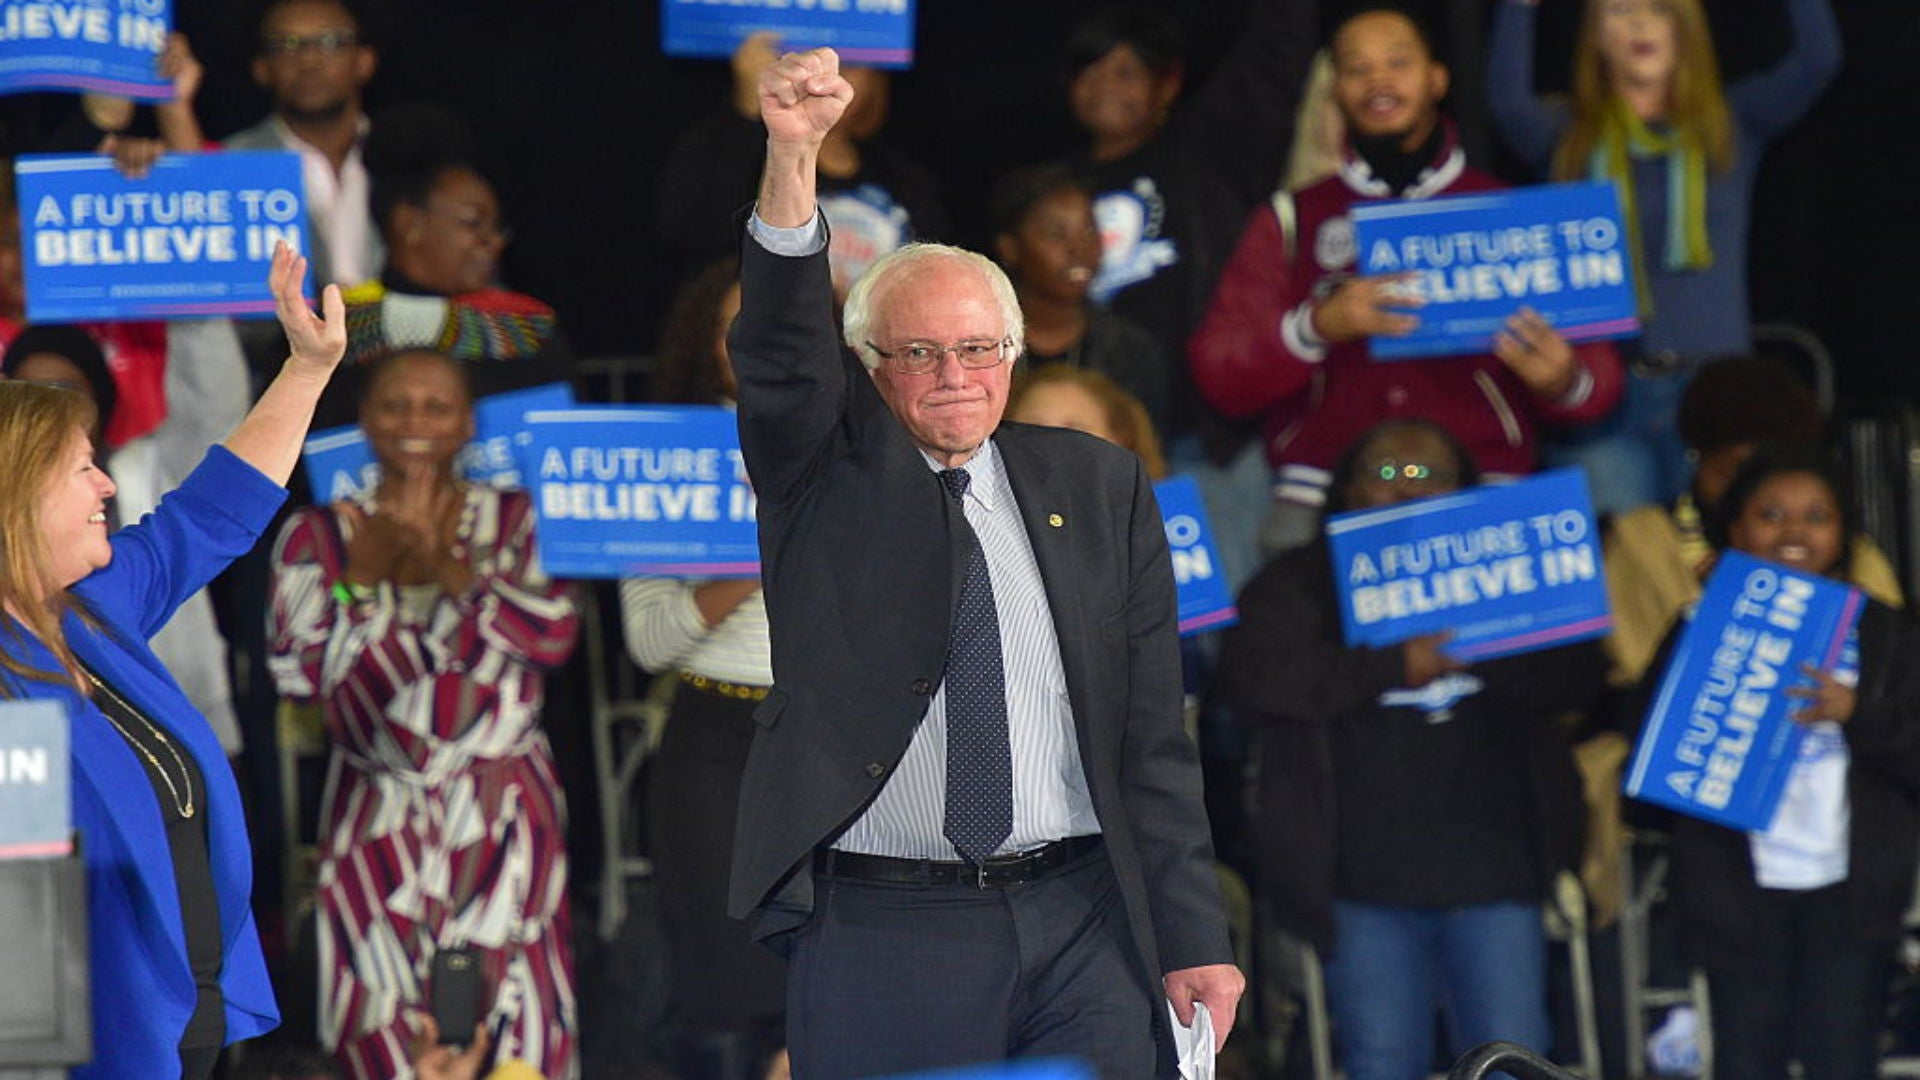 Biden's Campaign Keeps Being Celebrated For Its 'Resilience,' But What About Bernie's?